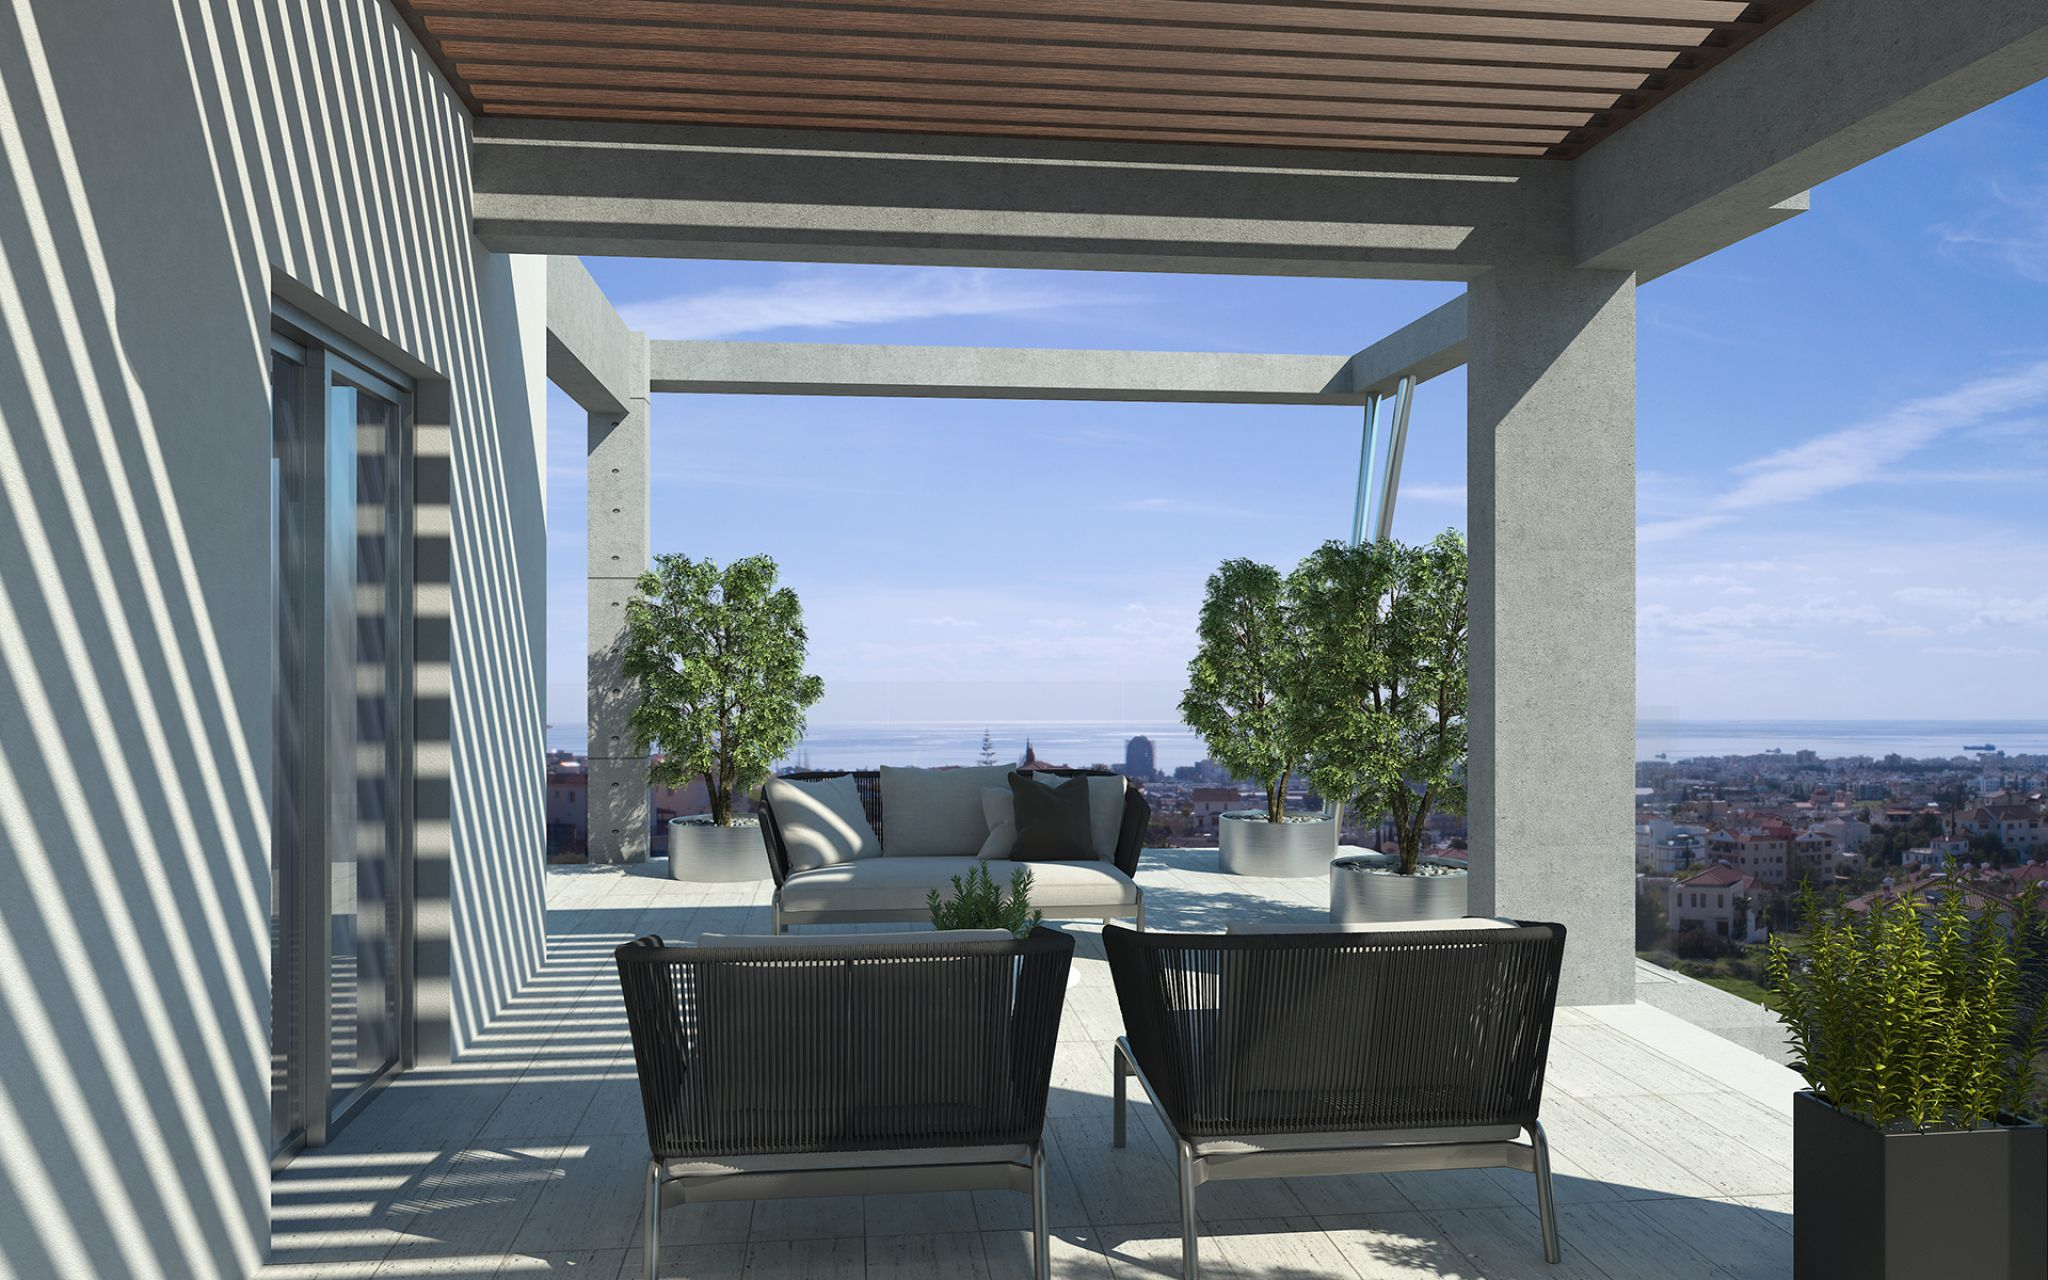 Brand new whole building for sale in Agios Athanasios area Limassol